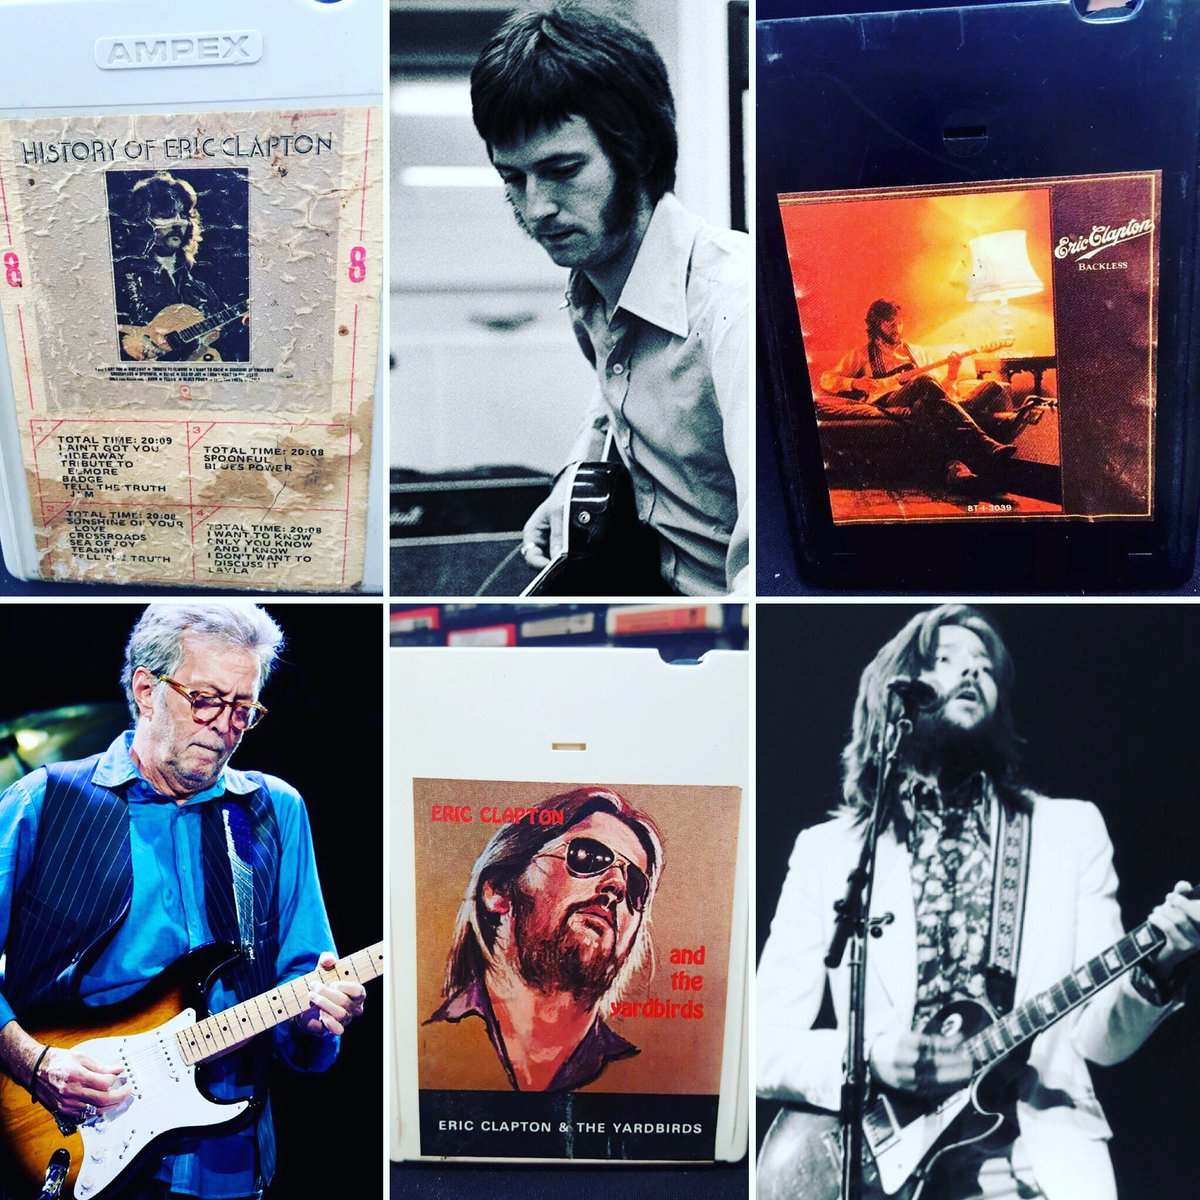 For eric clapton